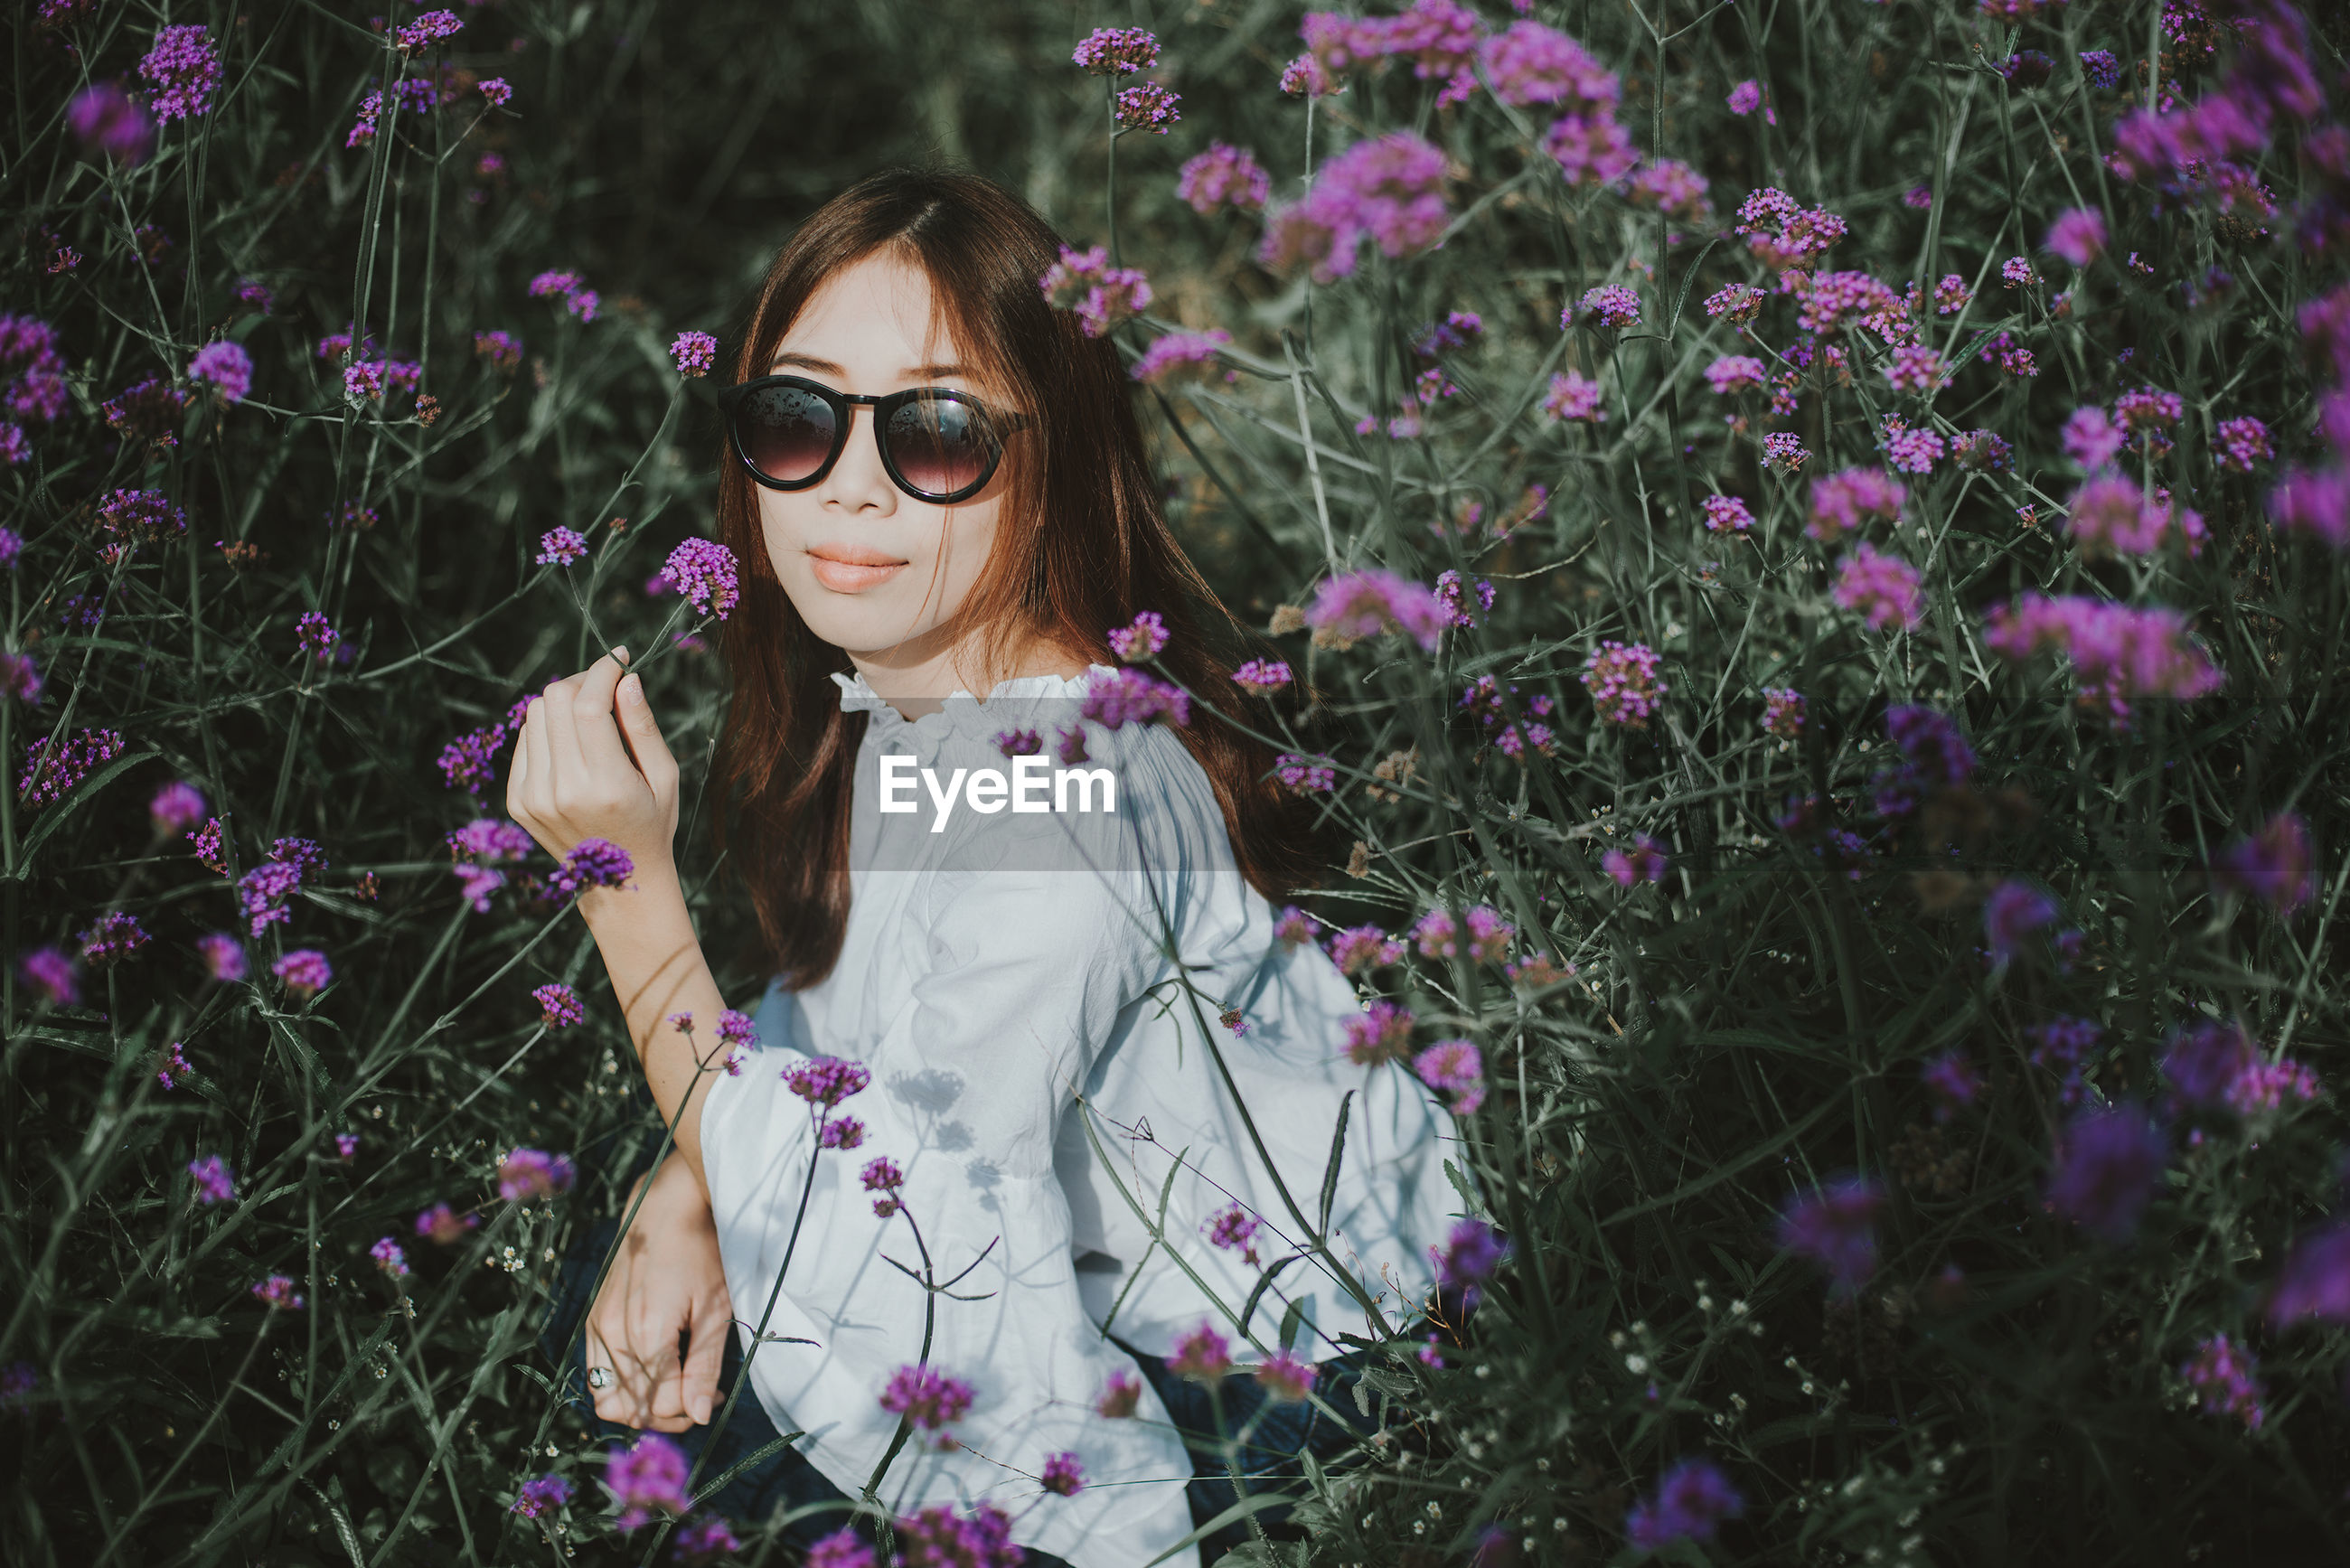 Portrait of young woman amidst flowering plants